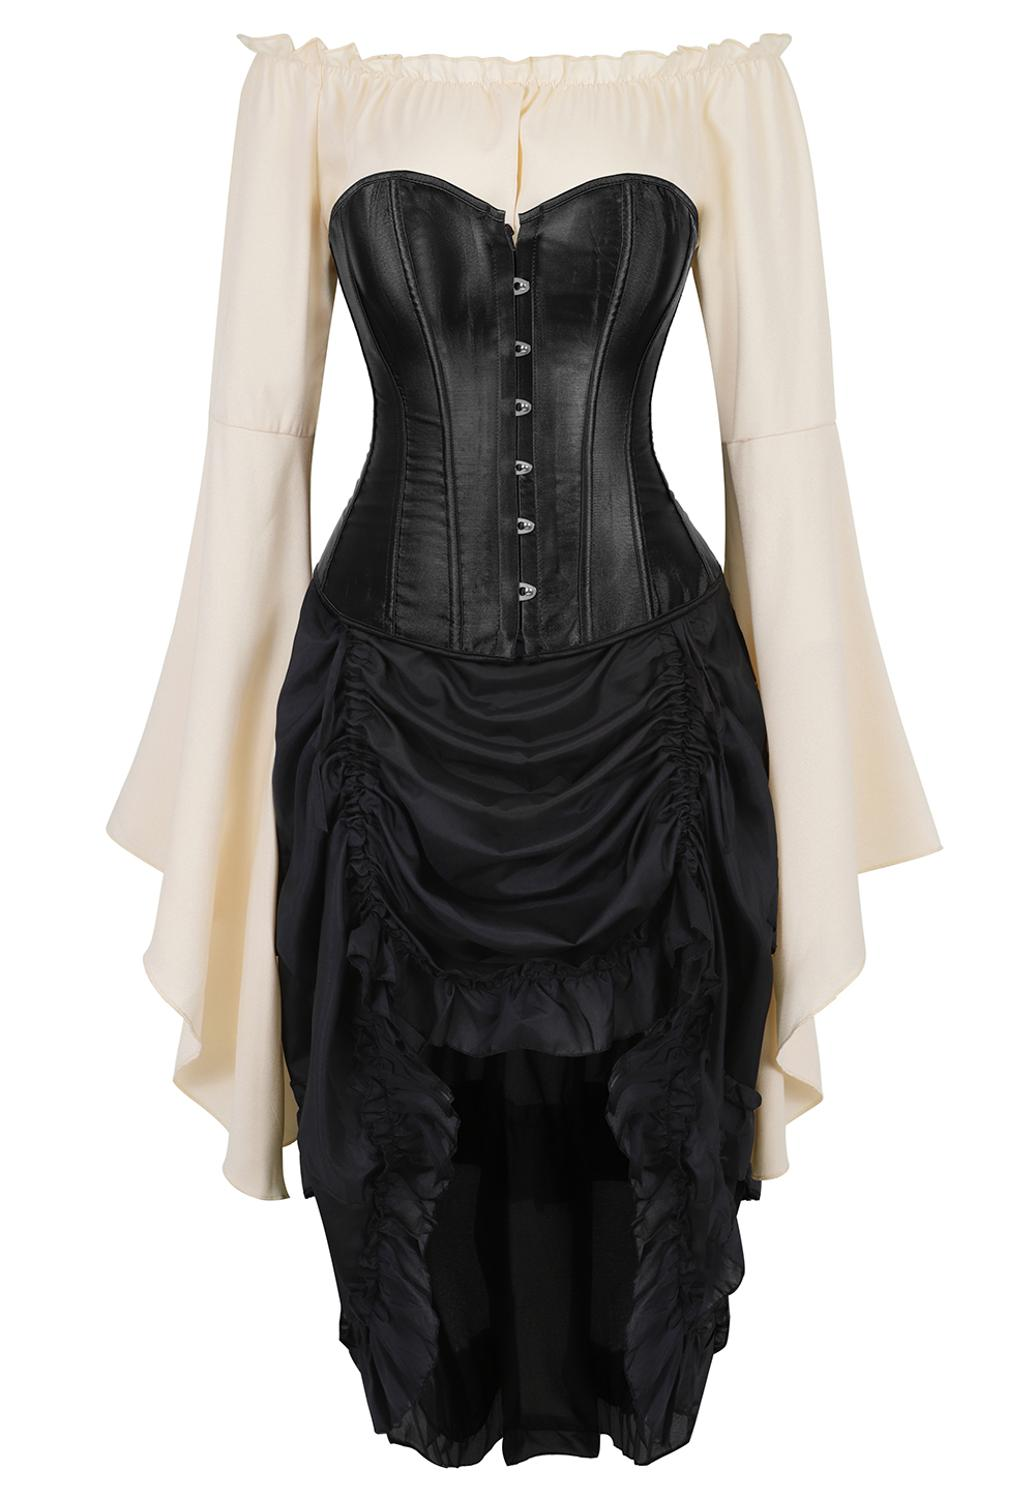 Grebrafan Satin Corset Plus Size with Pirate Skirt and Blouse 3 Piece Costume Steampunk